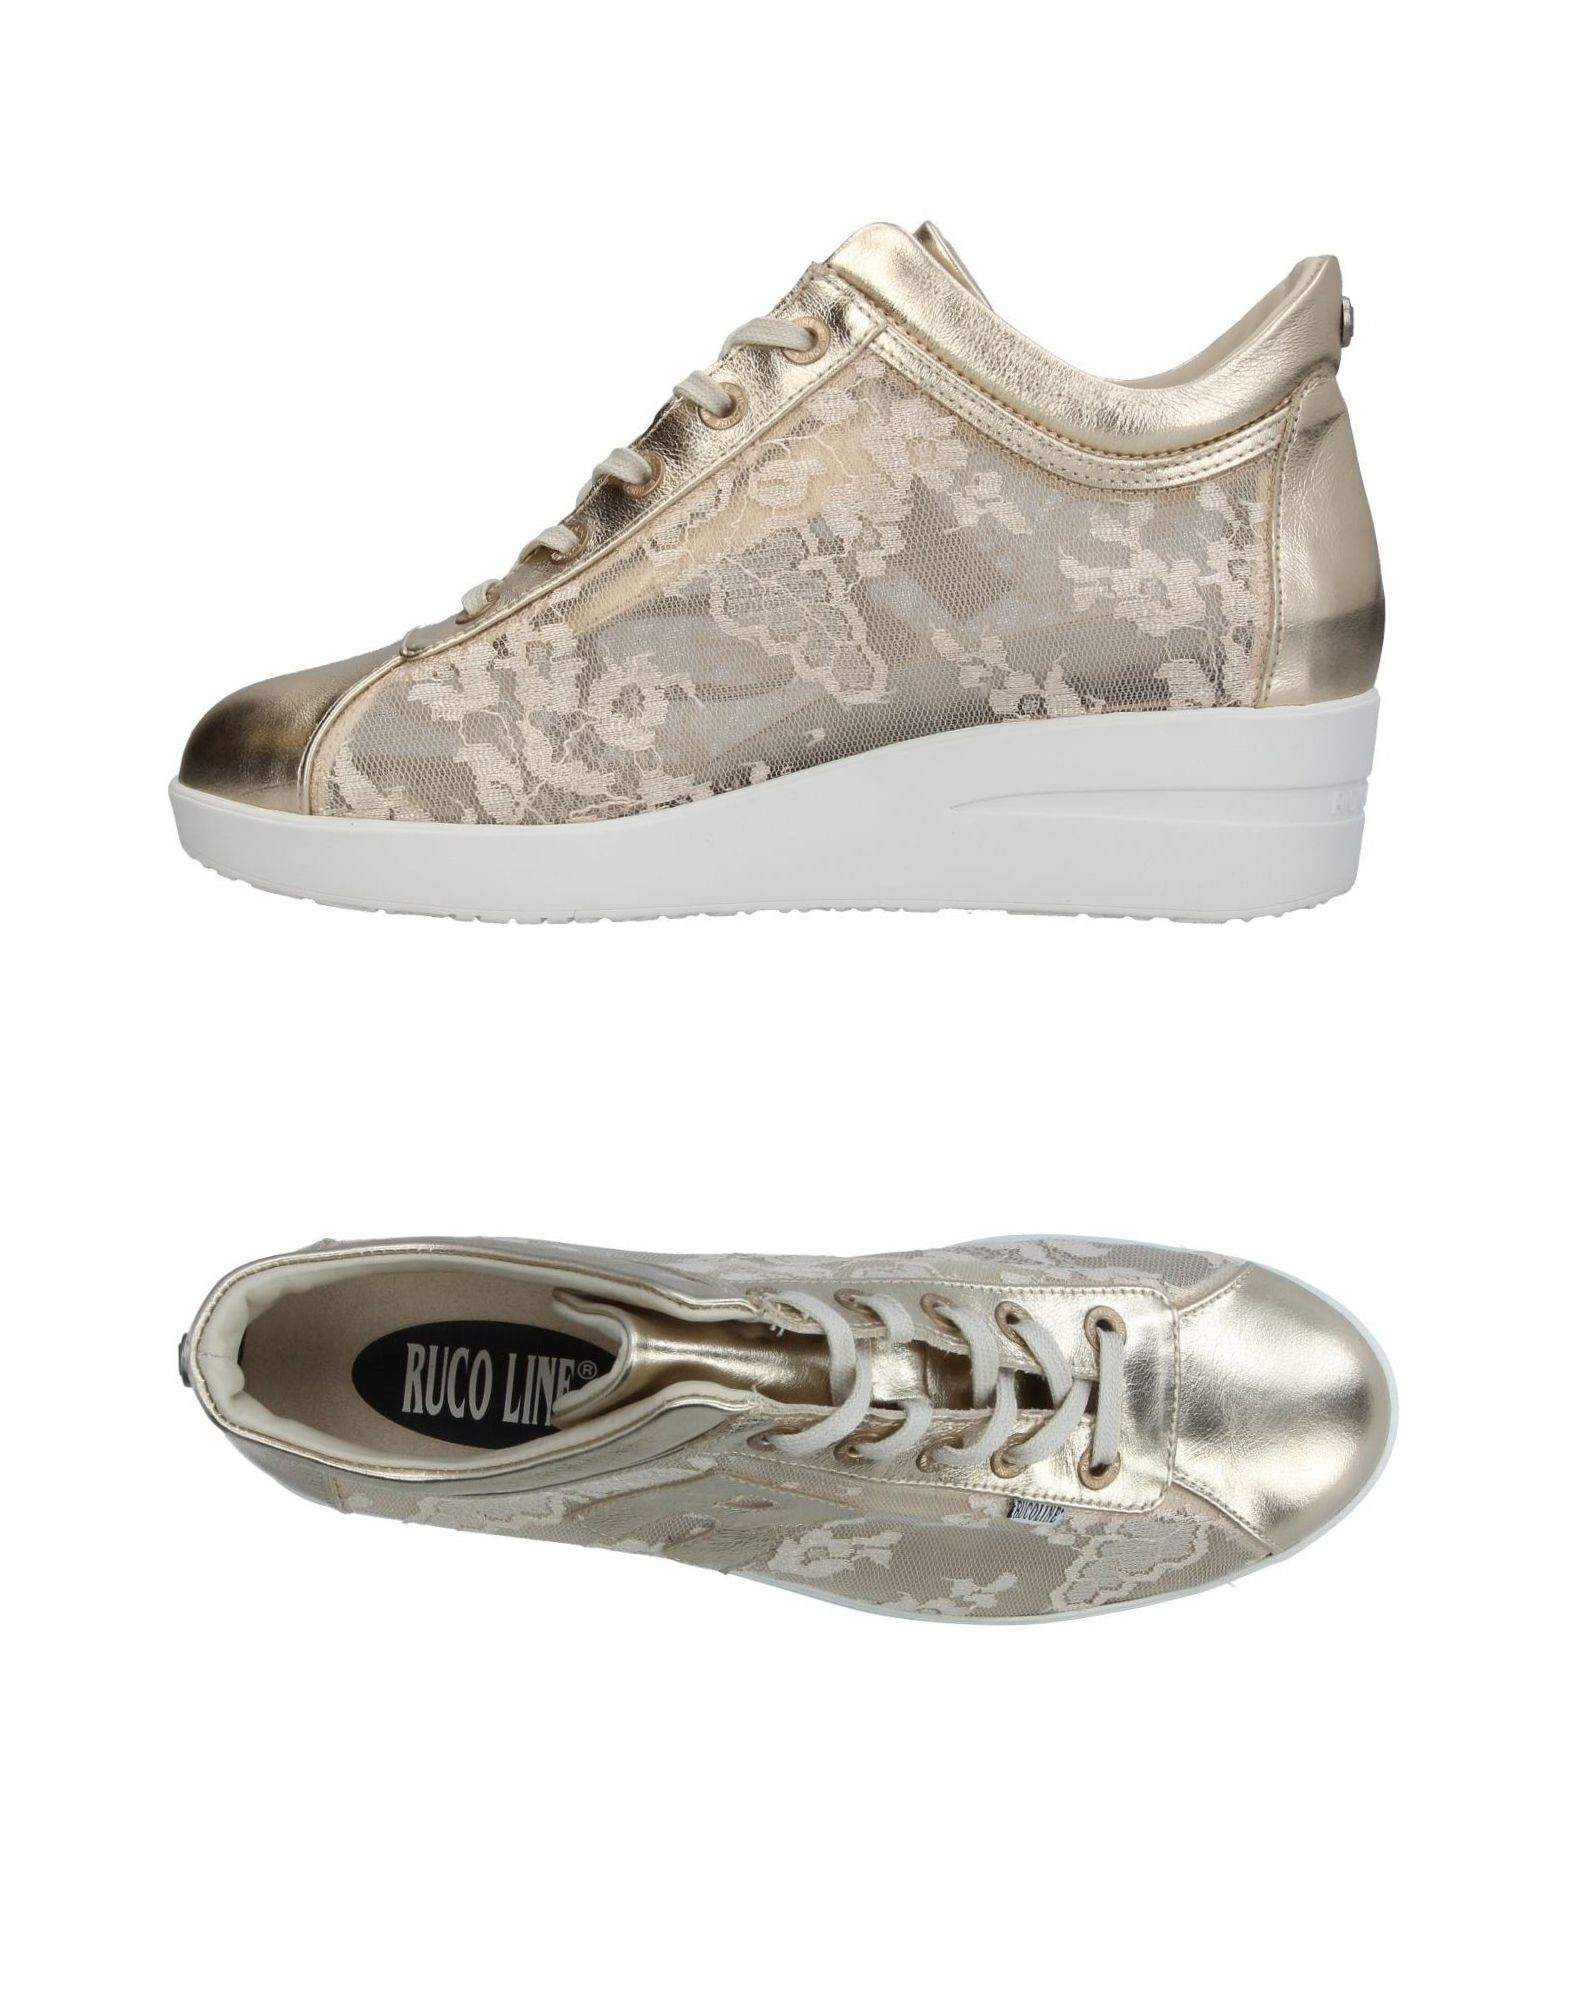 Ruco Sneakers Line Sneakers - Women Ruco Line Sneakers Ruco online on  Australia - 11334933GD 3e9484